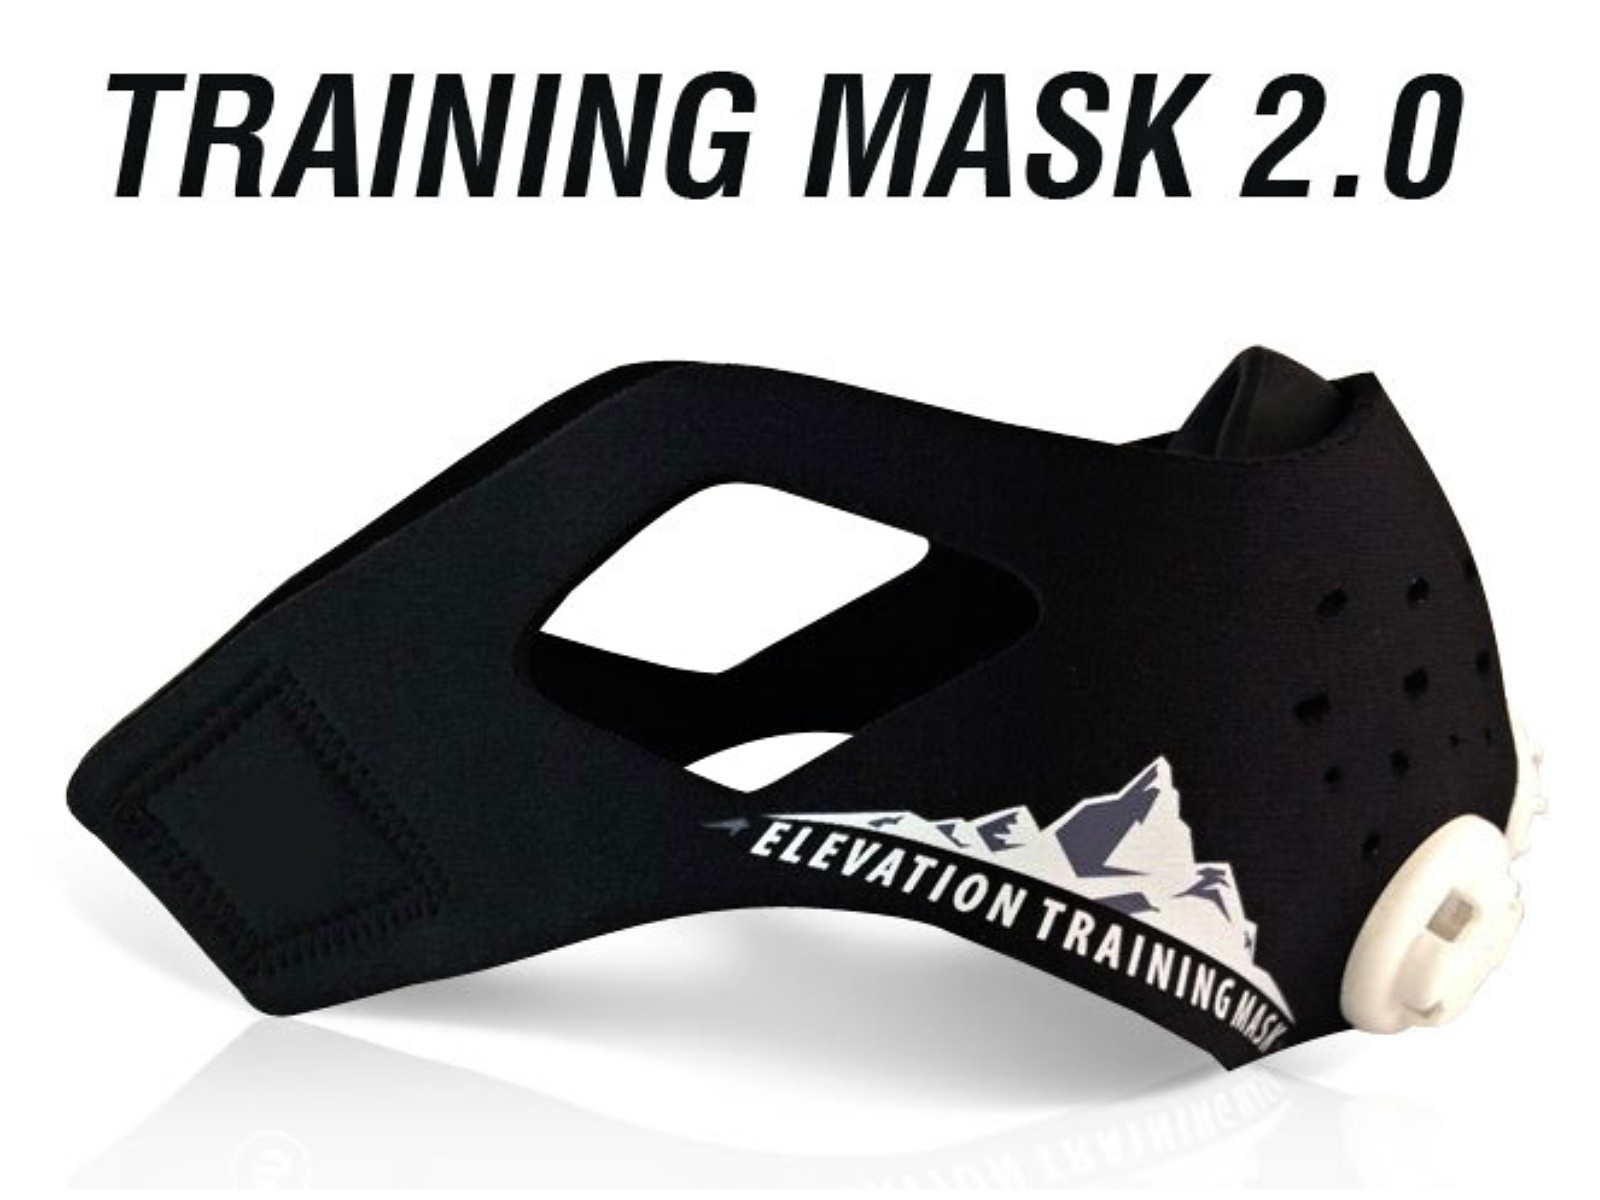 Tréninková maska ELEVATION Training Mask 2.0 vel. L